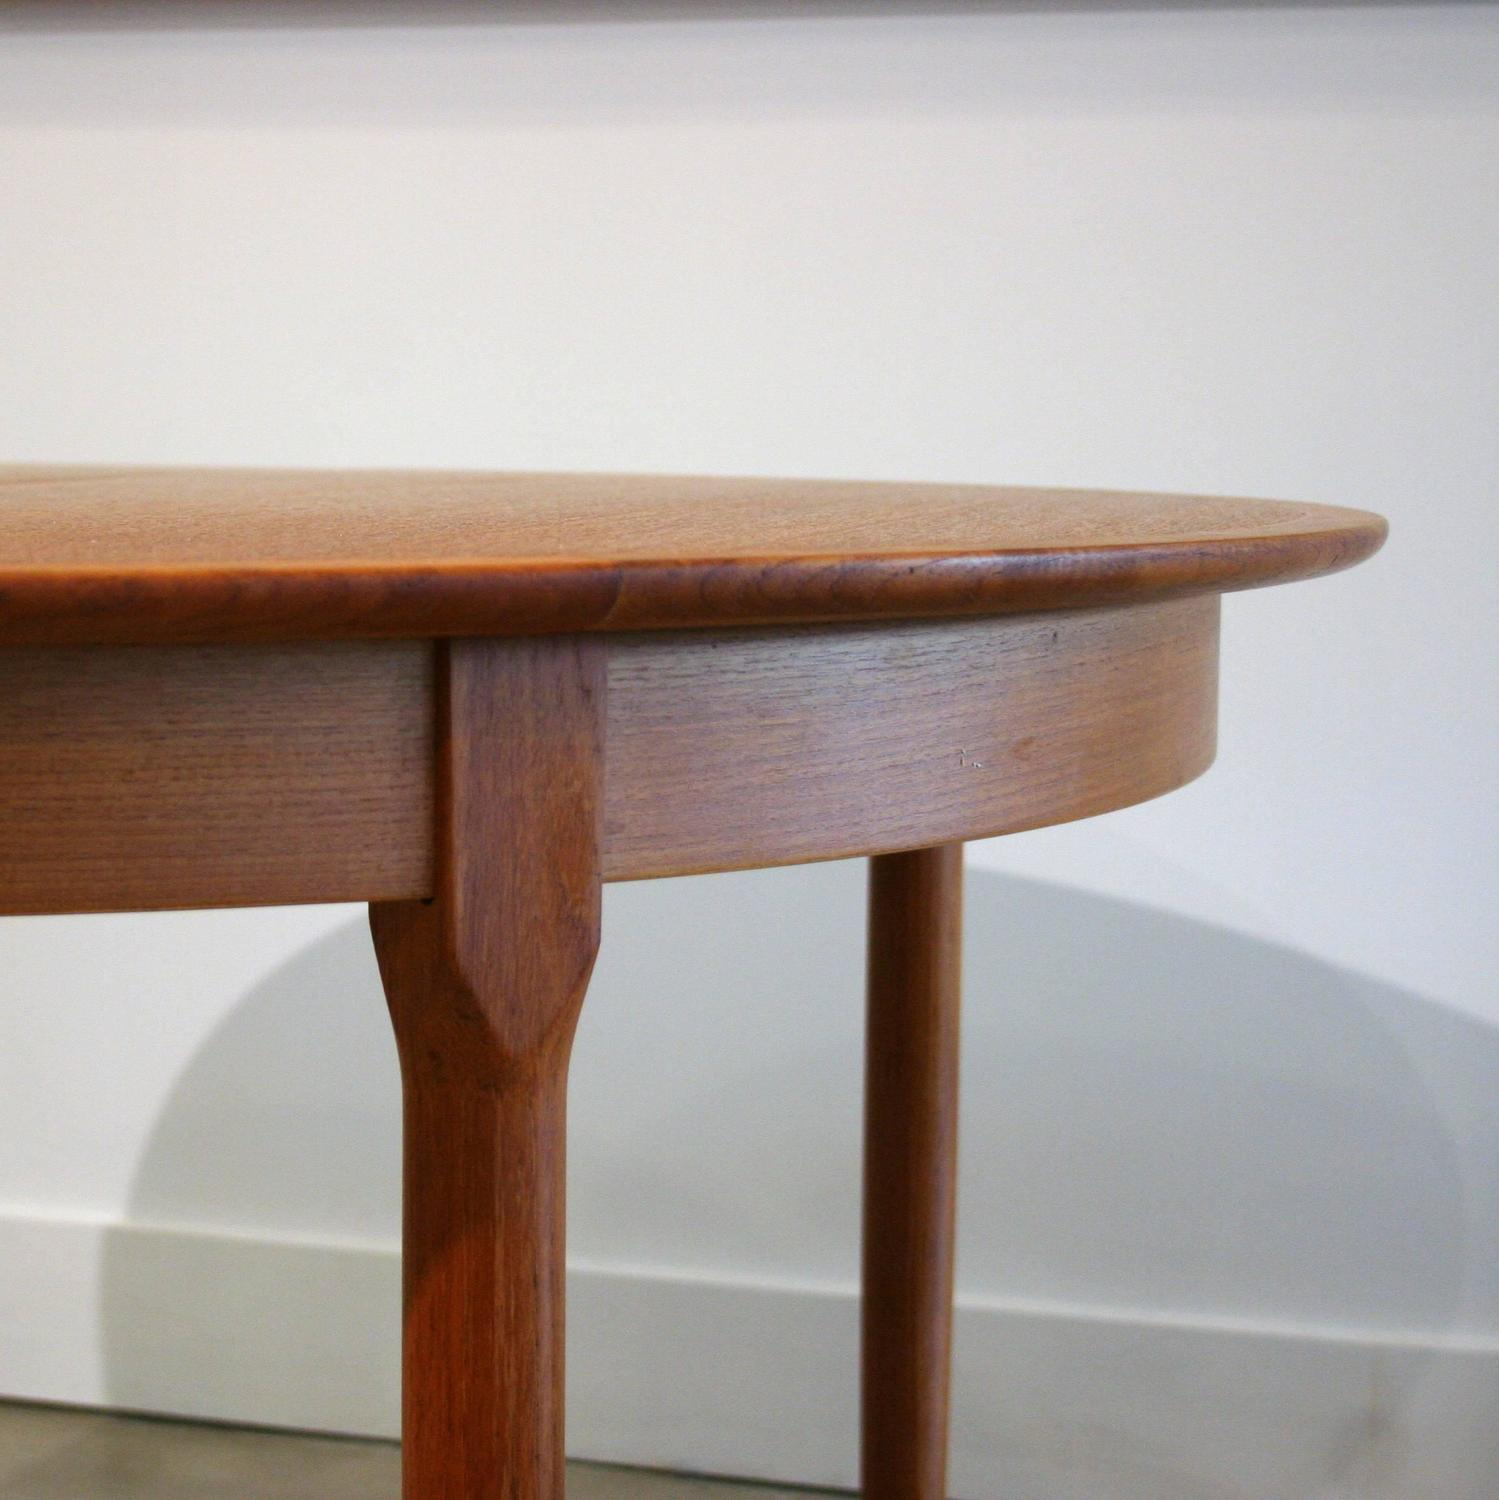 Vintage Danish Teak Round Dining Table at 1stdibs : IMG3548z from www.1stdibs.com size 1499 x 1500 jpeg 133kB